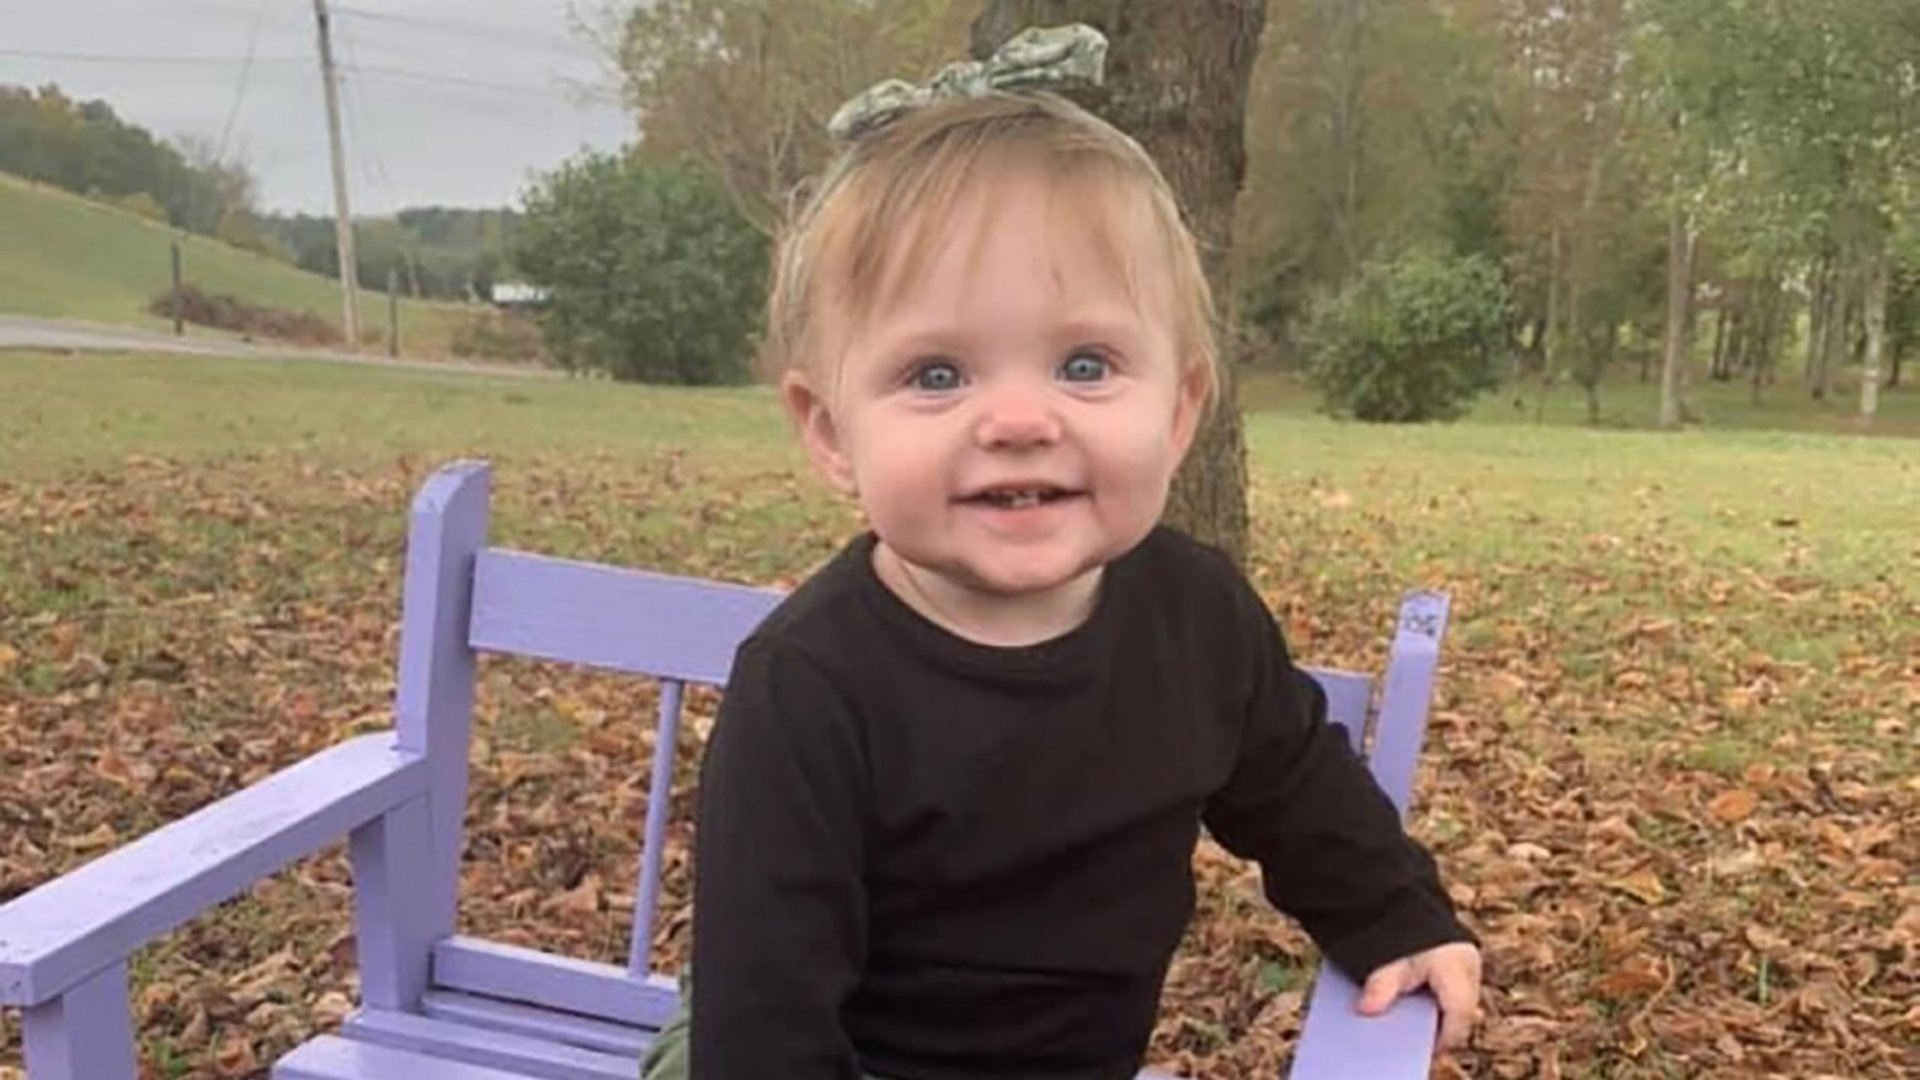 Tennessee Bureau of Investigation released this undated photo of Evelyn Mae Boswell.